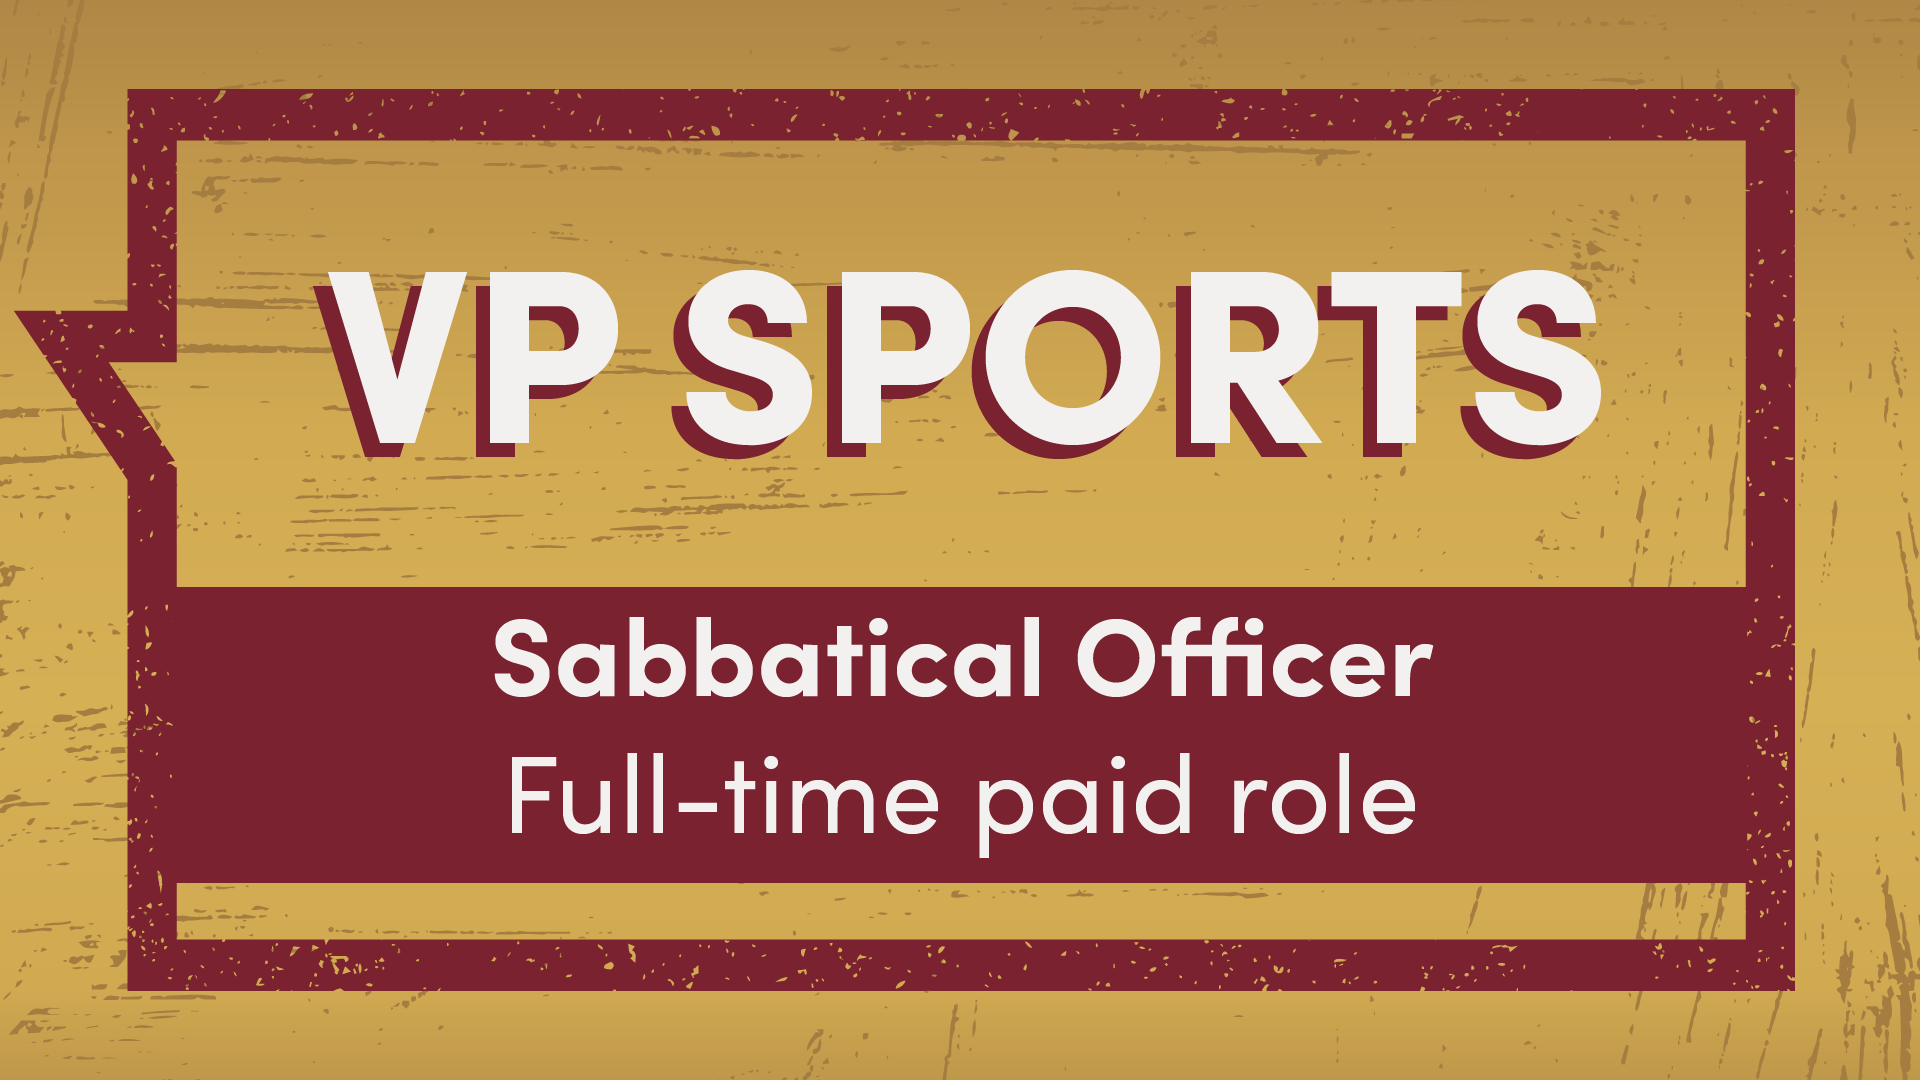 VP Sports Sabbatical Officer full-time paid role